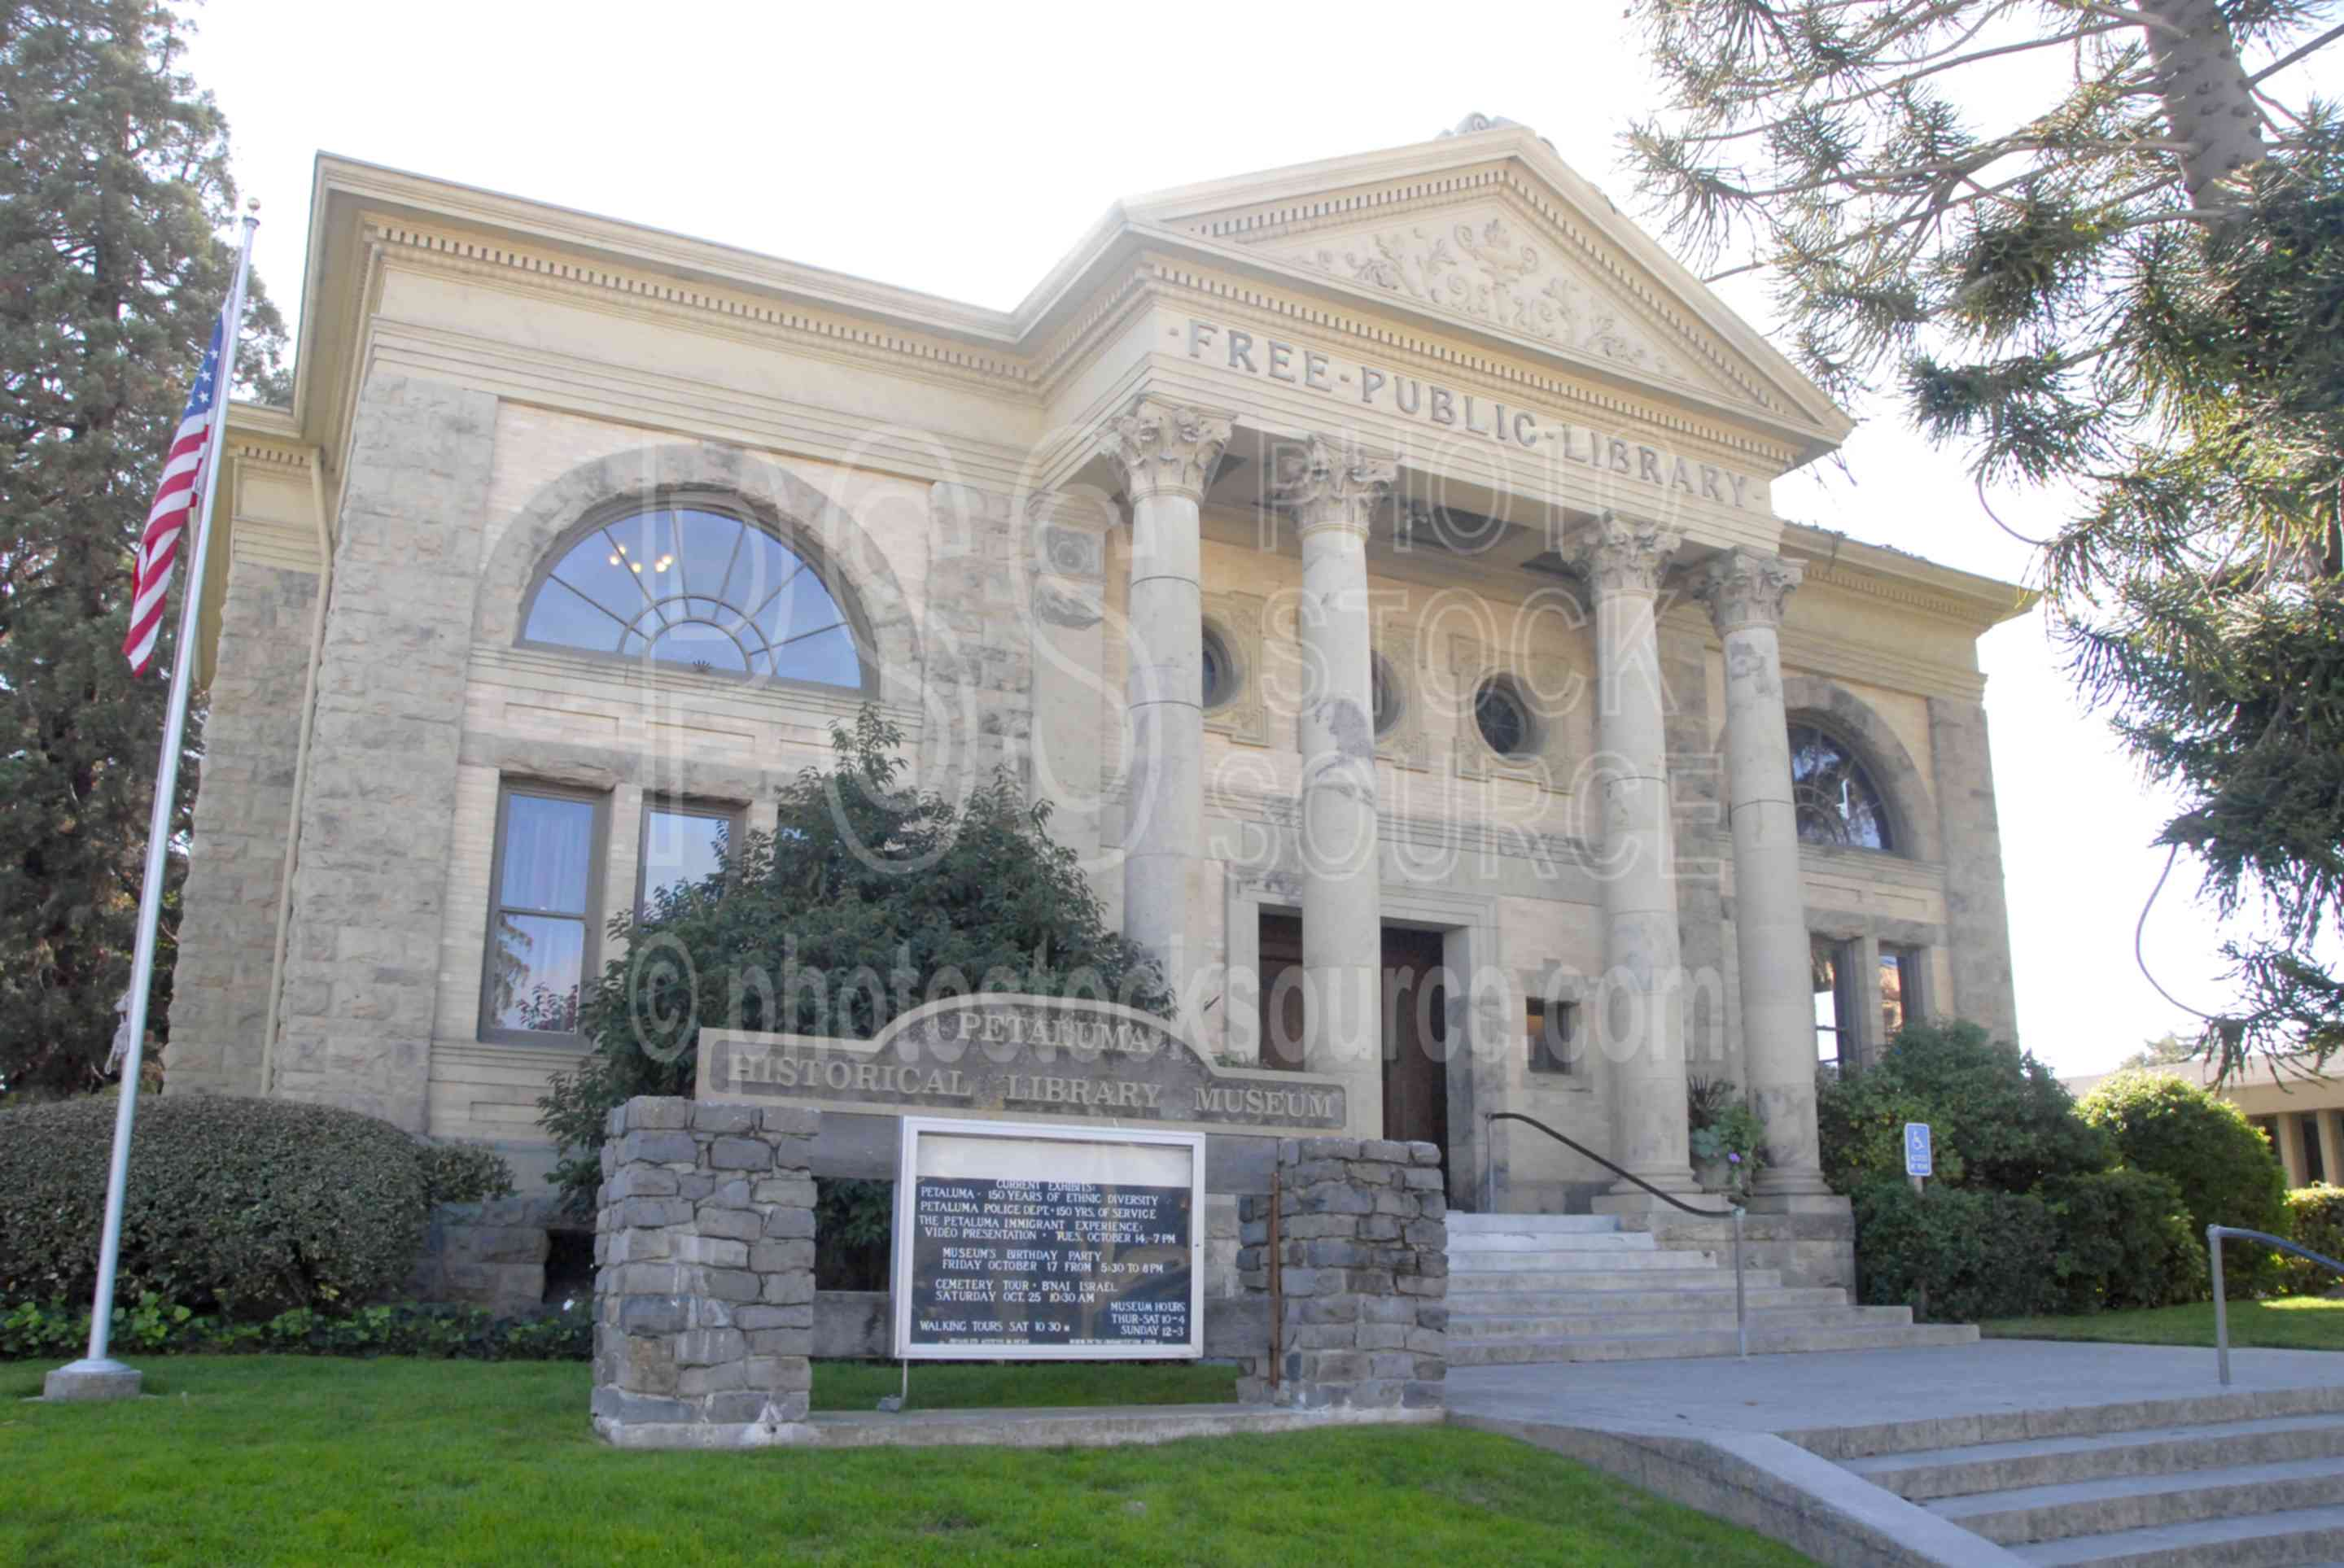 Petaluma Library,downtown,street,library,building